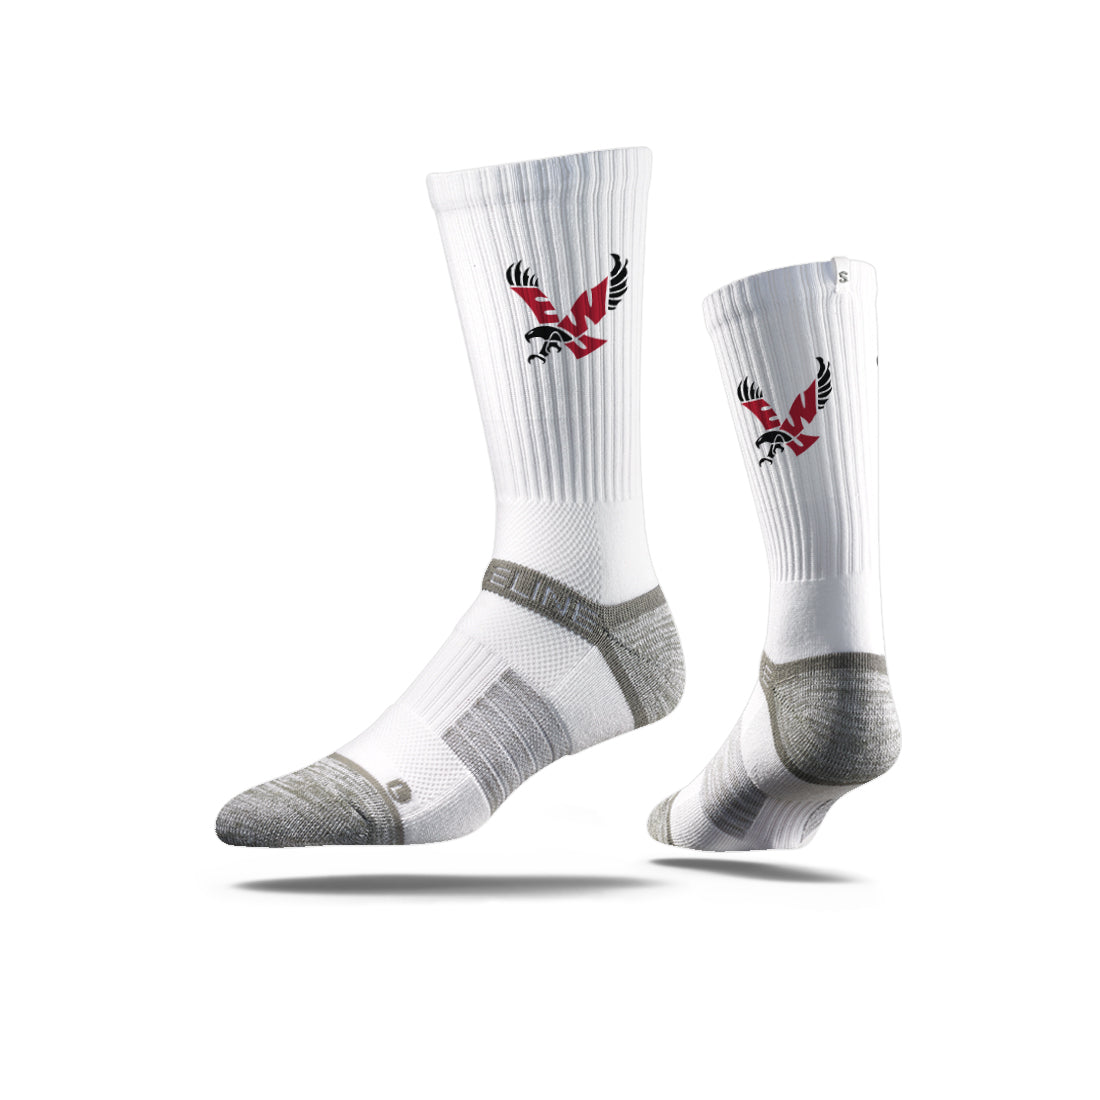 Eastern Washington University White Crew Socks